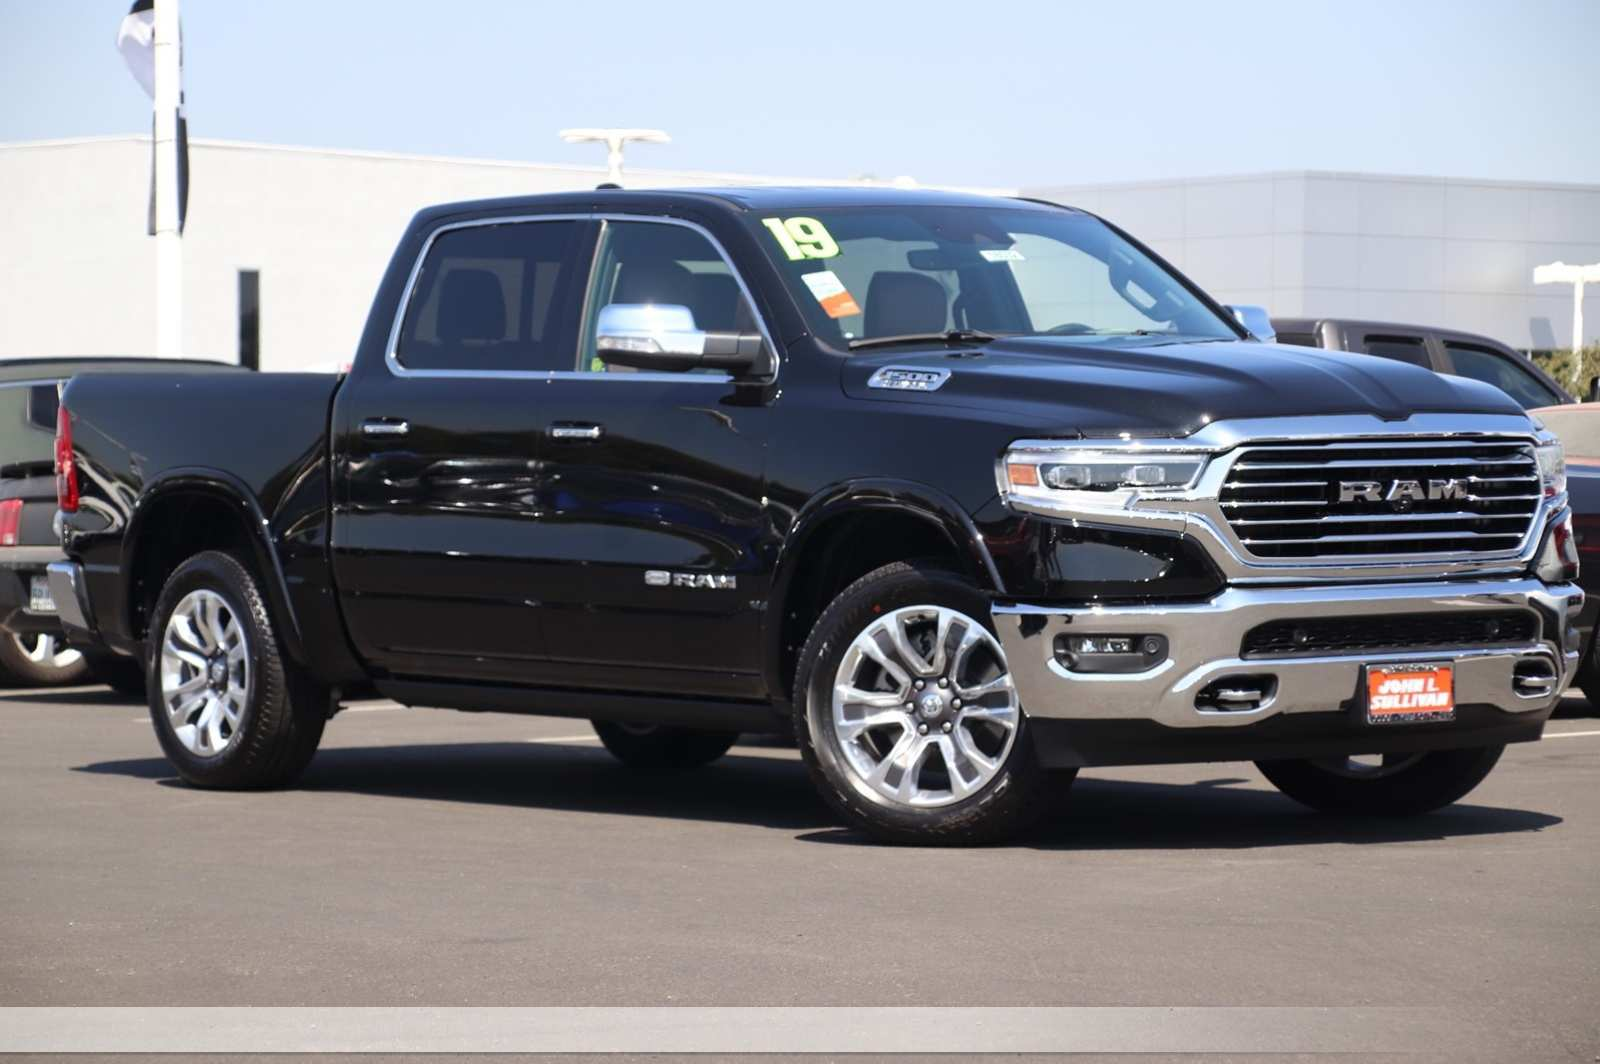 35 New 2019 Dodge 1500 Laramie Longhorn Interior by 2019 Dodge 1500 Laramie Longhorn